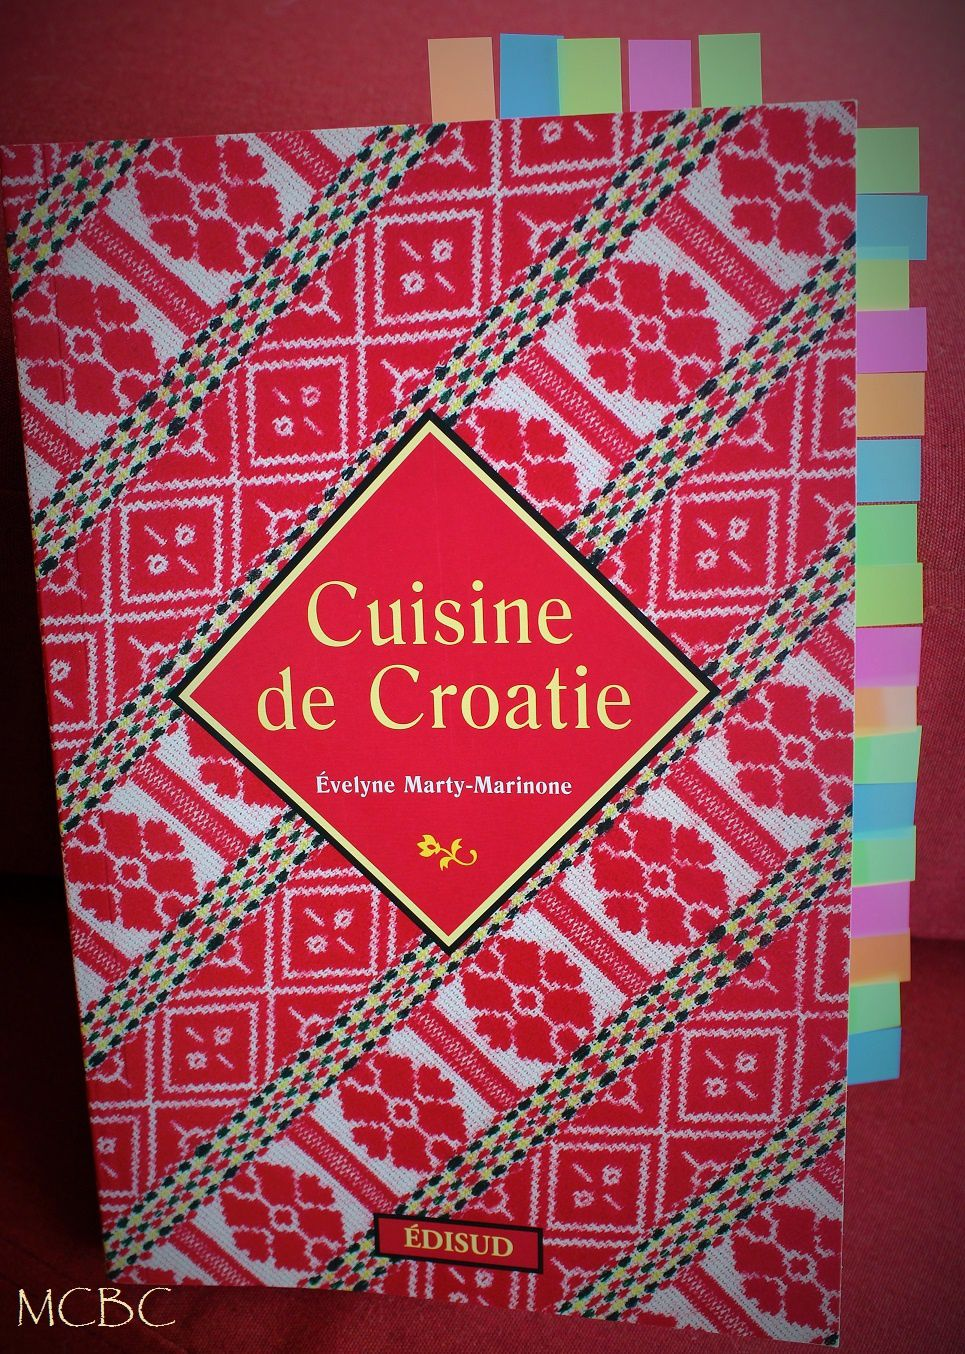 Cuisine de Croatie-Evelyne Marty-Marinone- Edisud 2008- Collection voyages Gourmands-175 pages